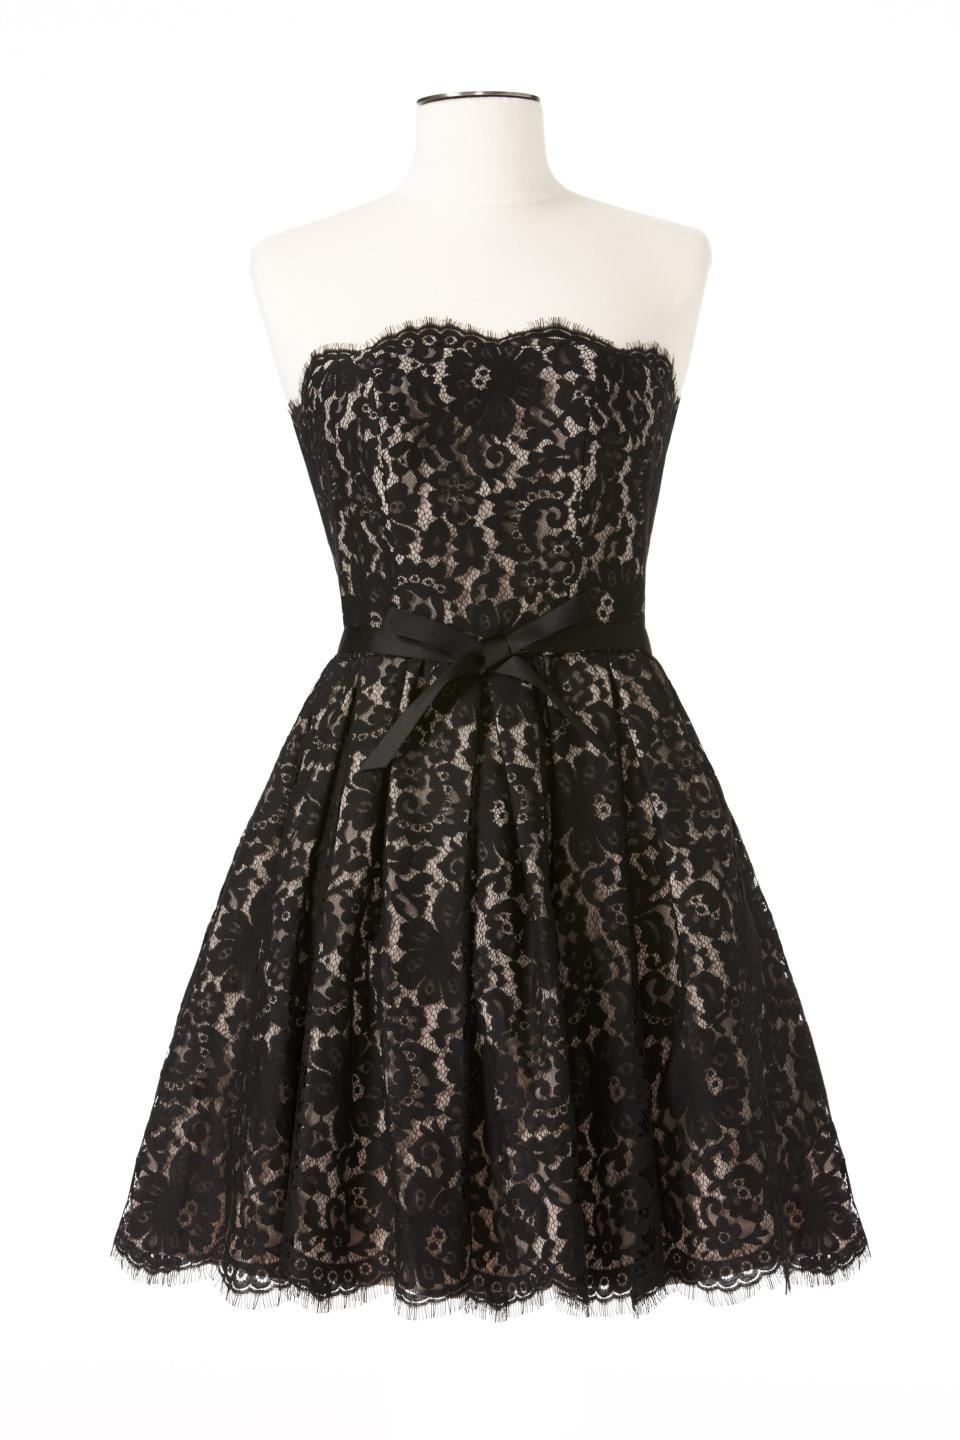 <b>Robert Rodriguez for Target + Neiman Marcus Holiday Collection Dress</b><br><br> Price: $99.99<br><br> Size: 2 – 14<br><br>